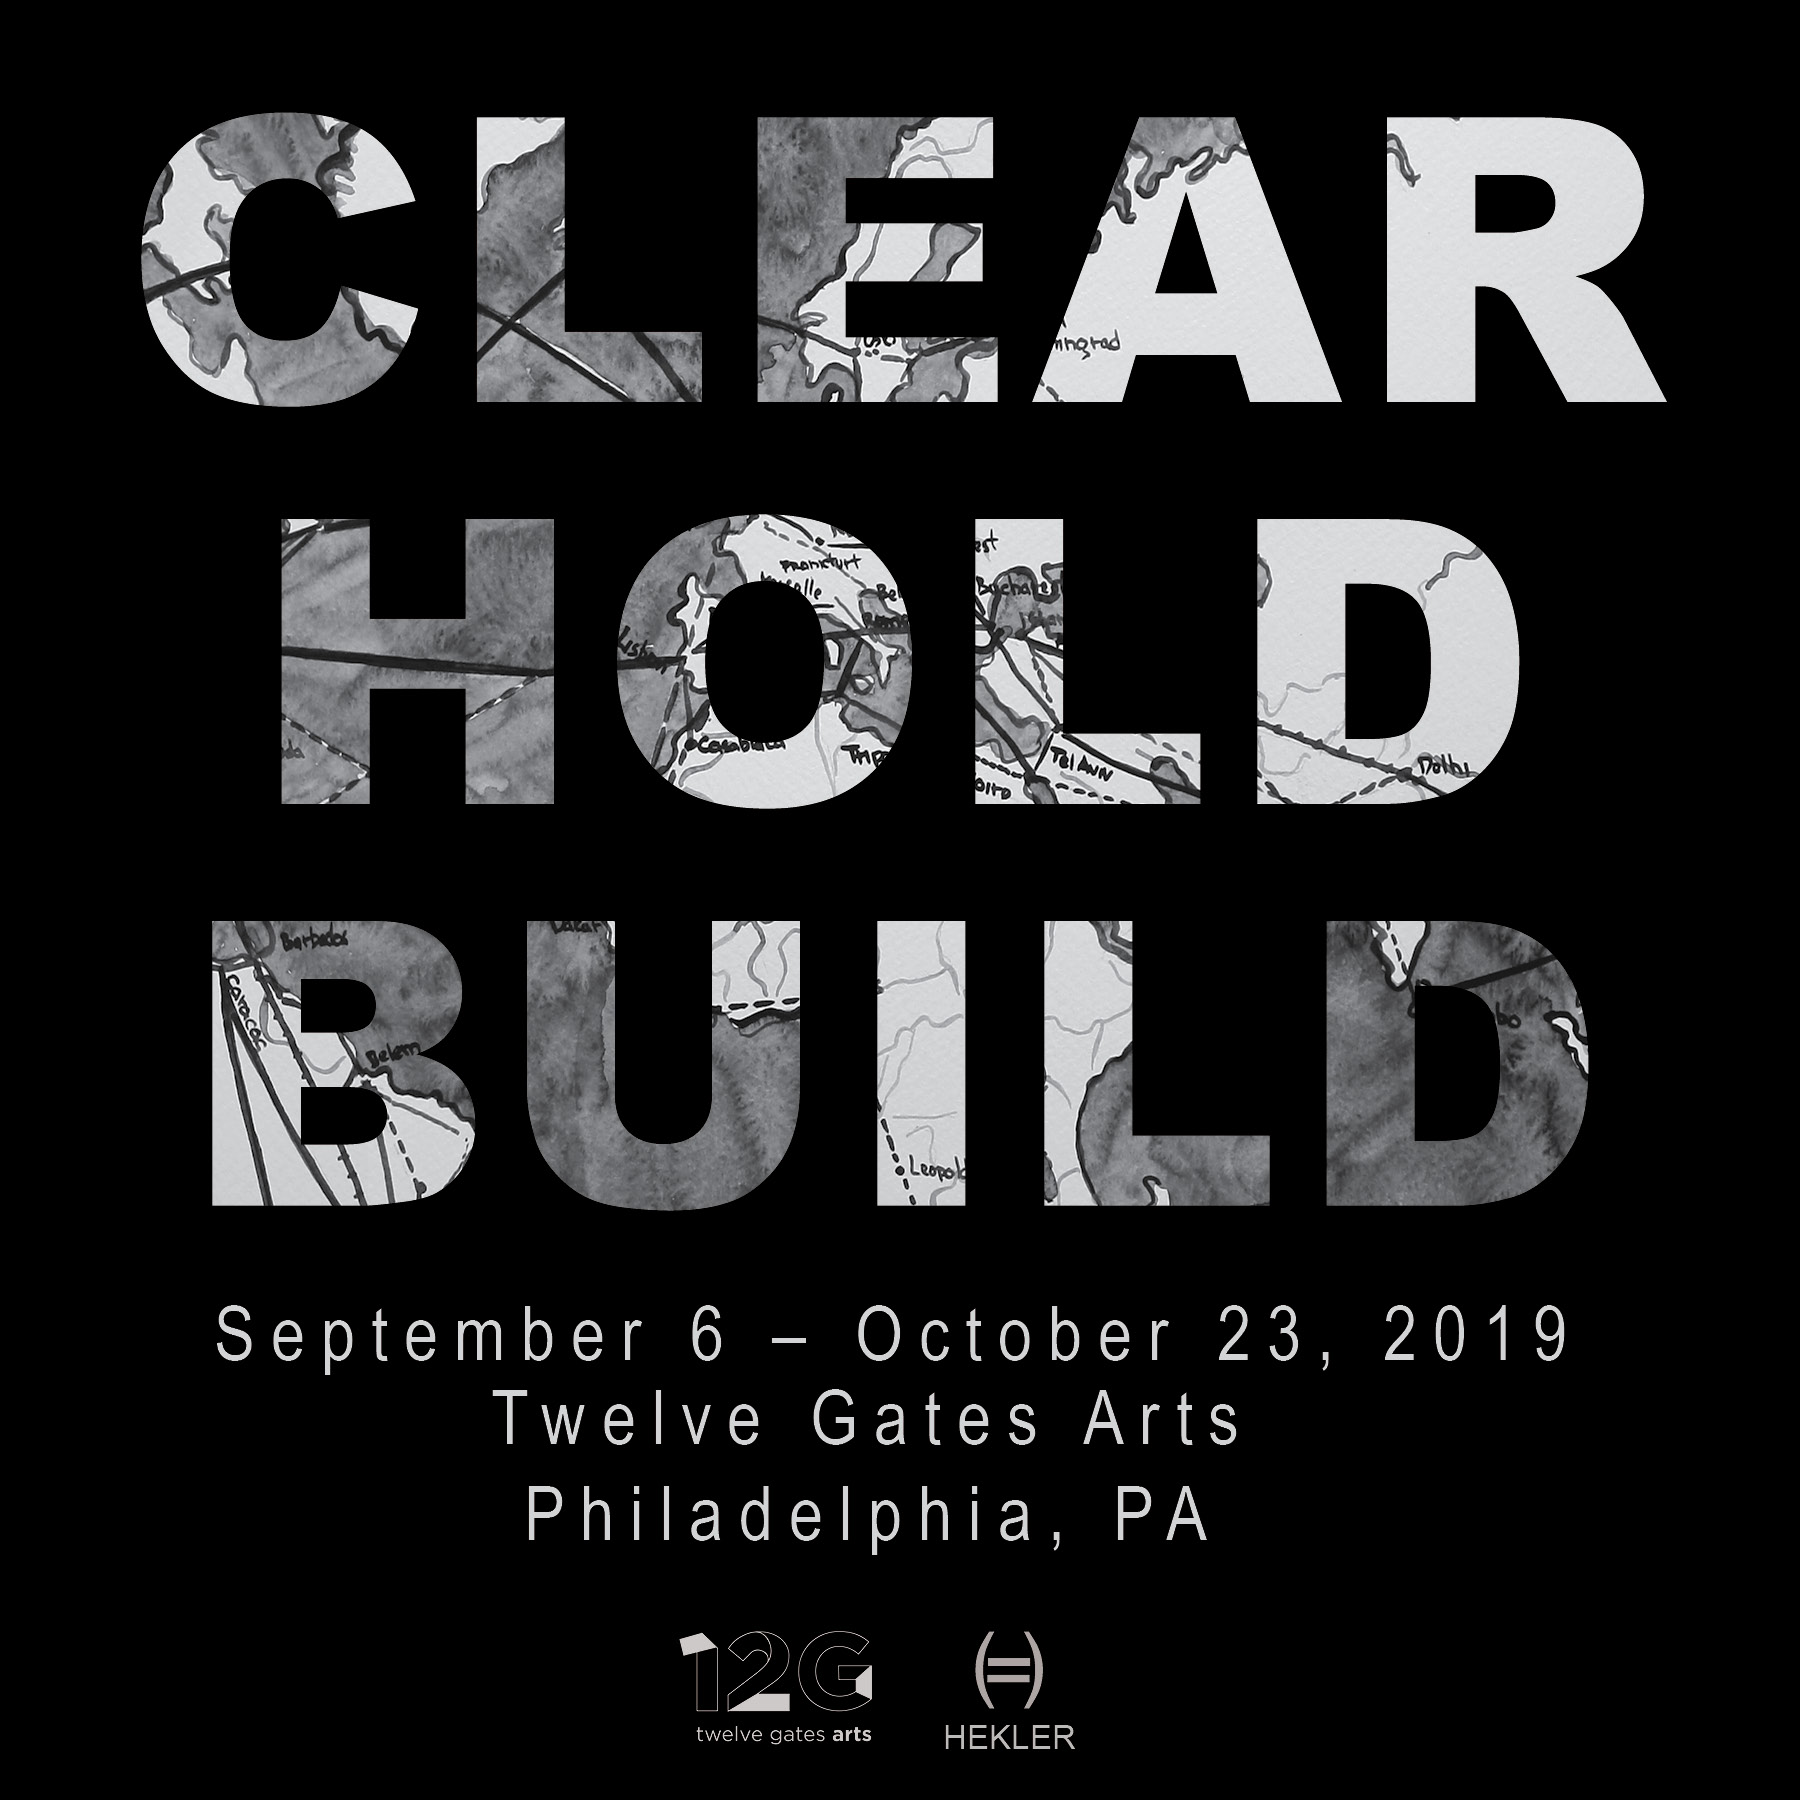 CLEAR-HOLD-BUILD